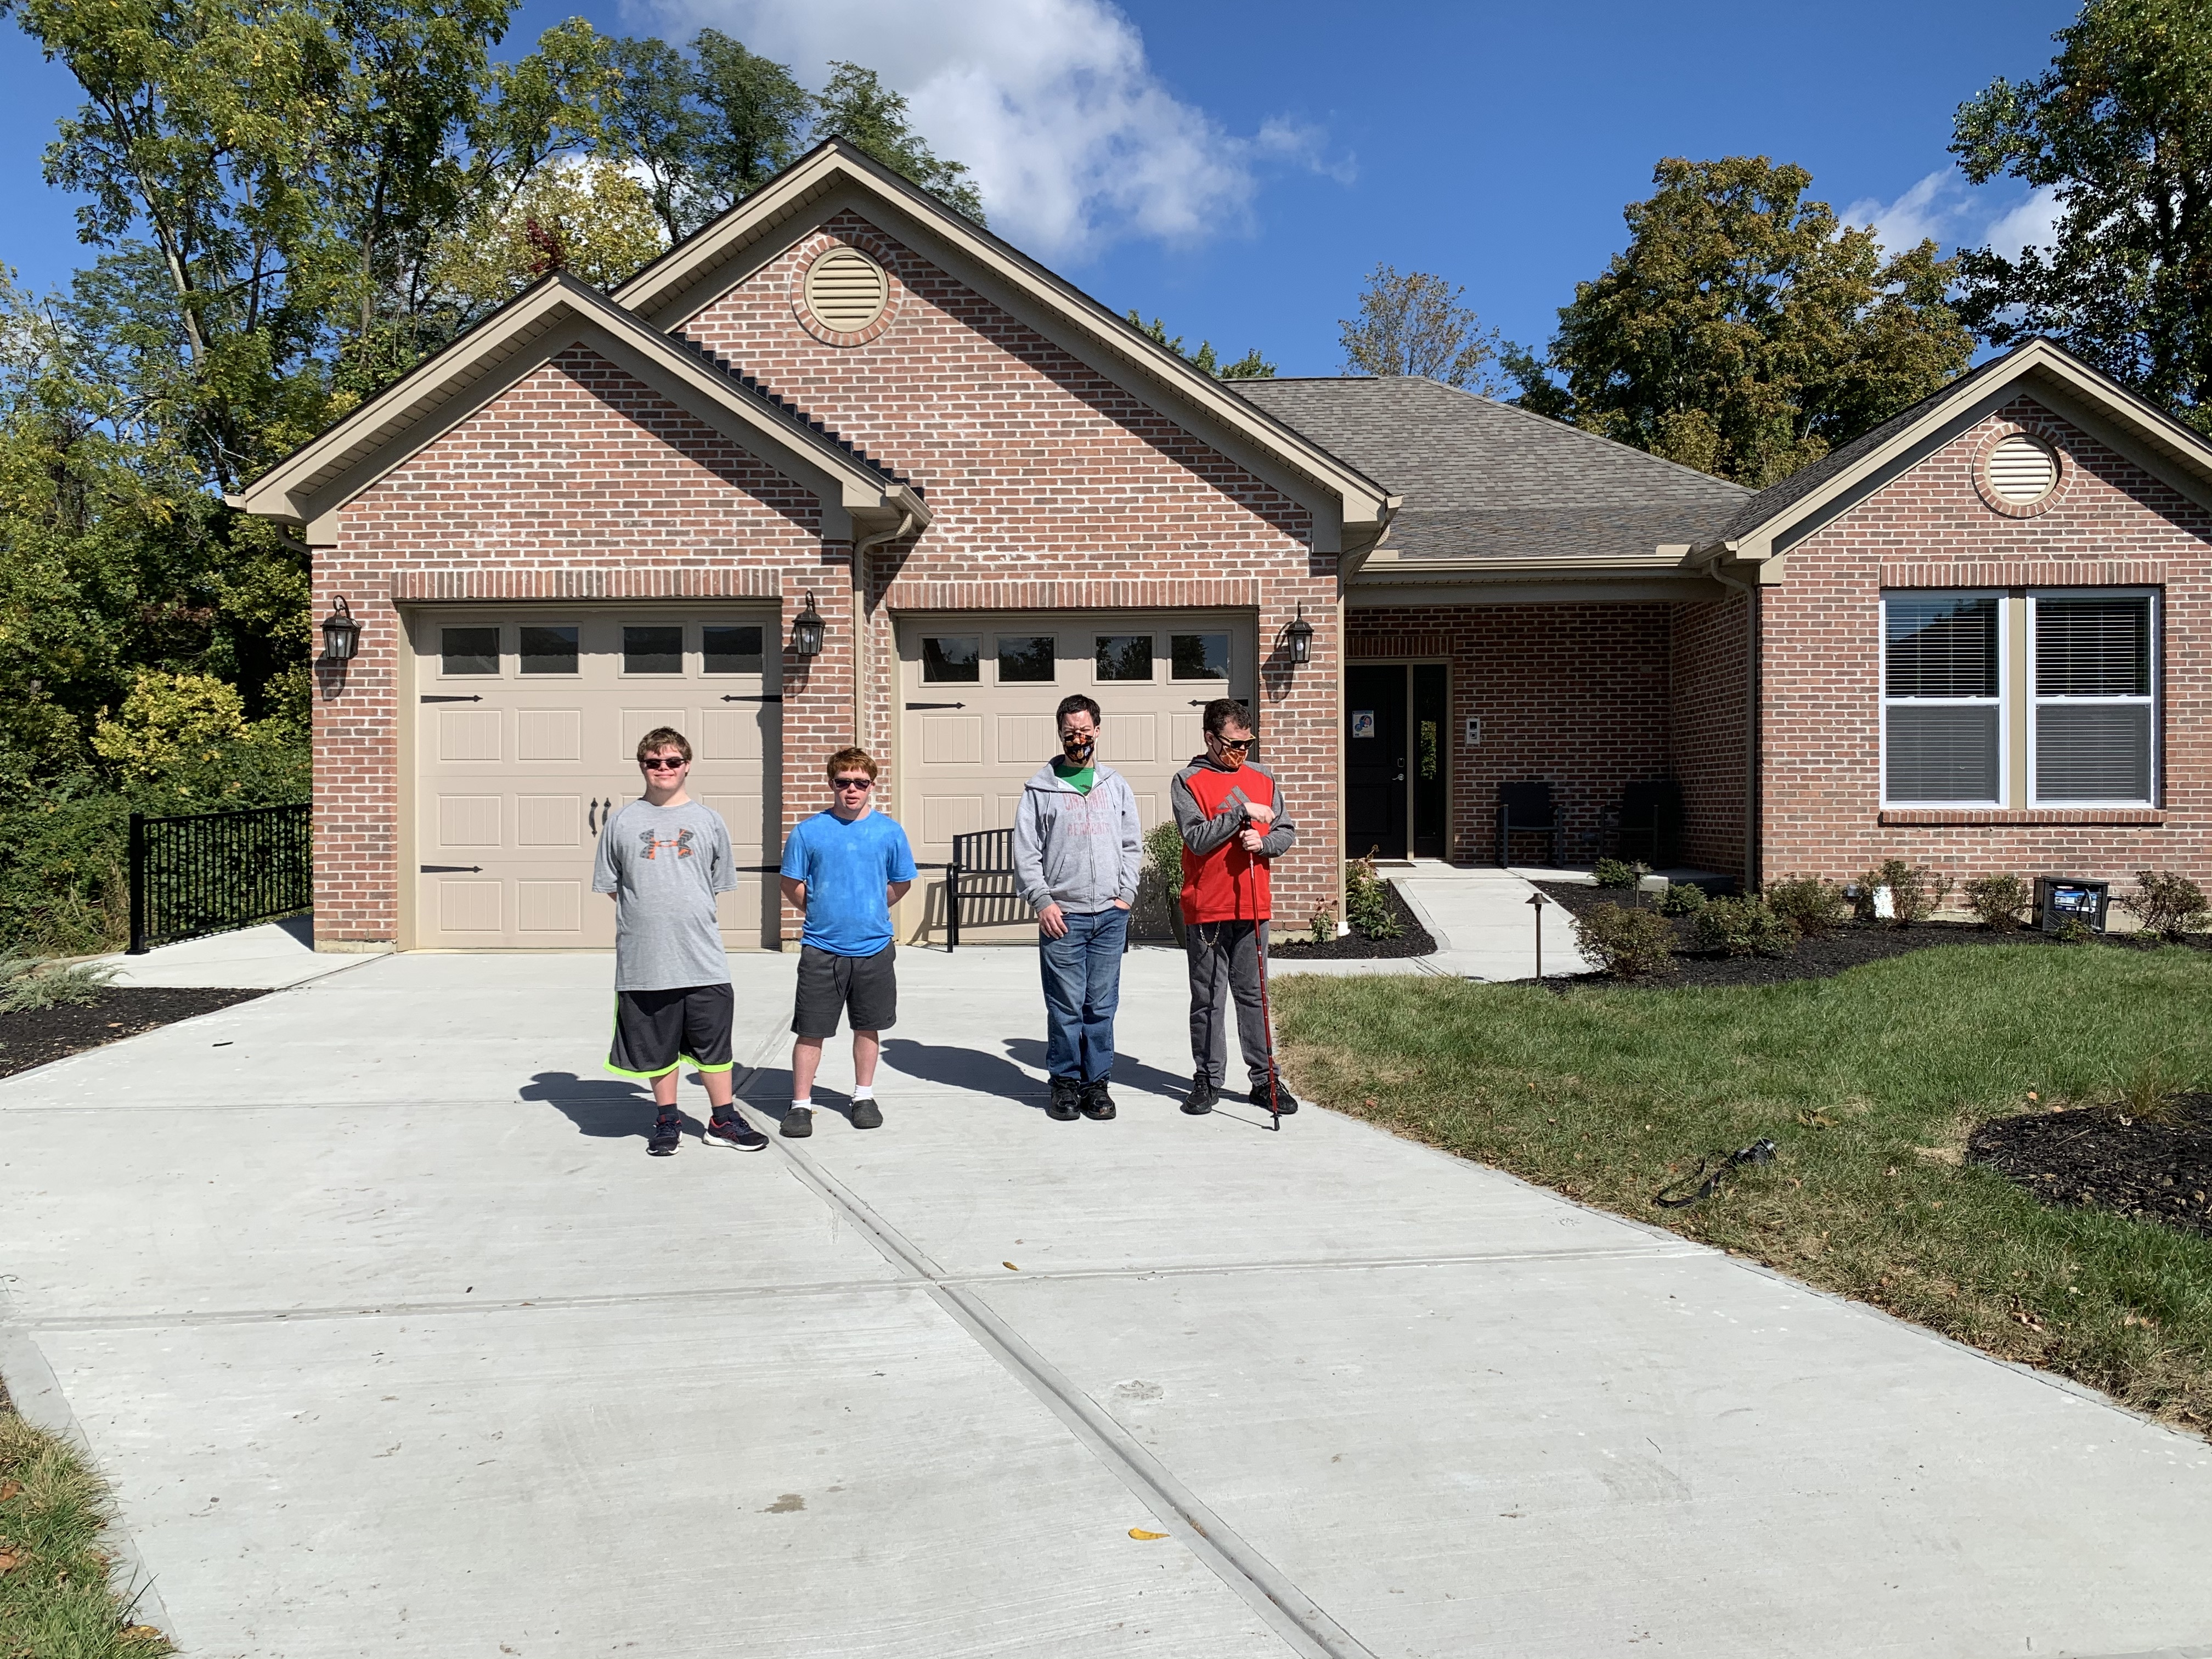 Four men, the residents of the Heidt Smart Living Home, stand in the driveway with the house behind them.